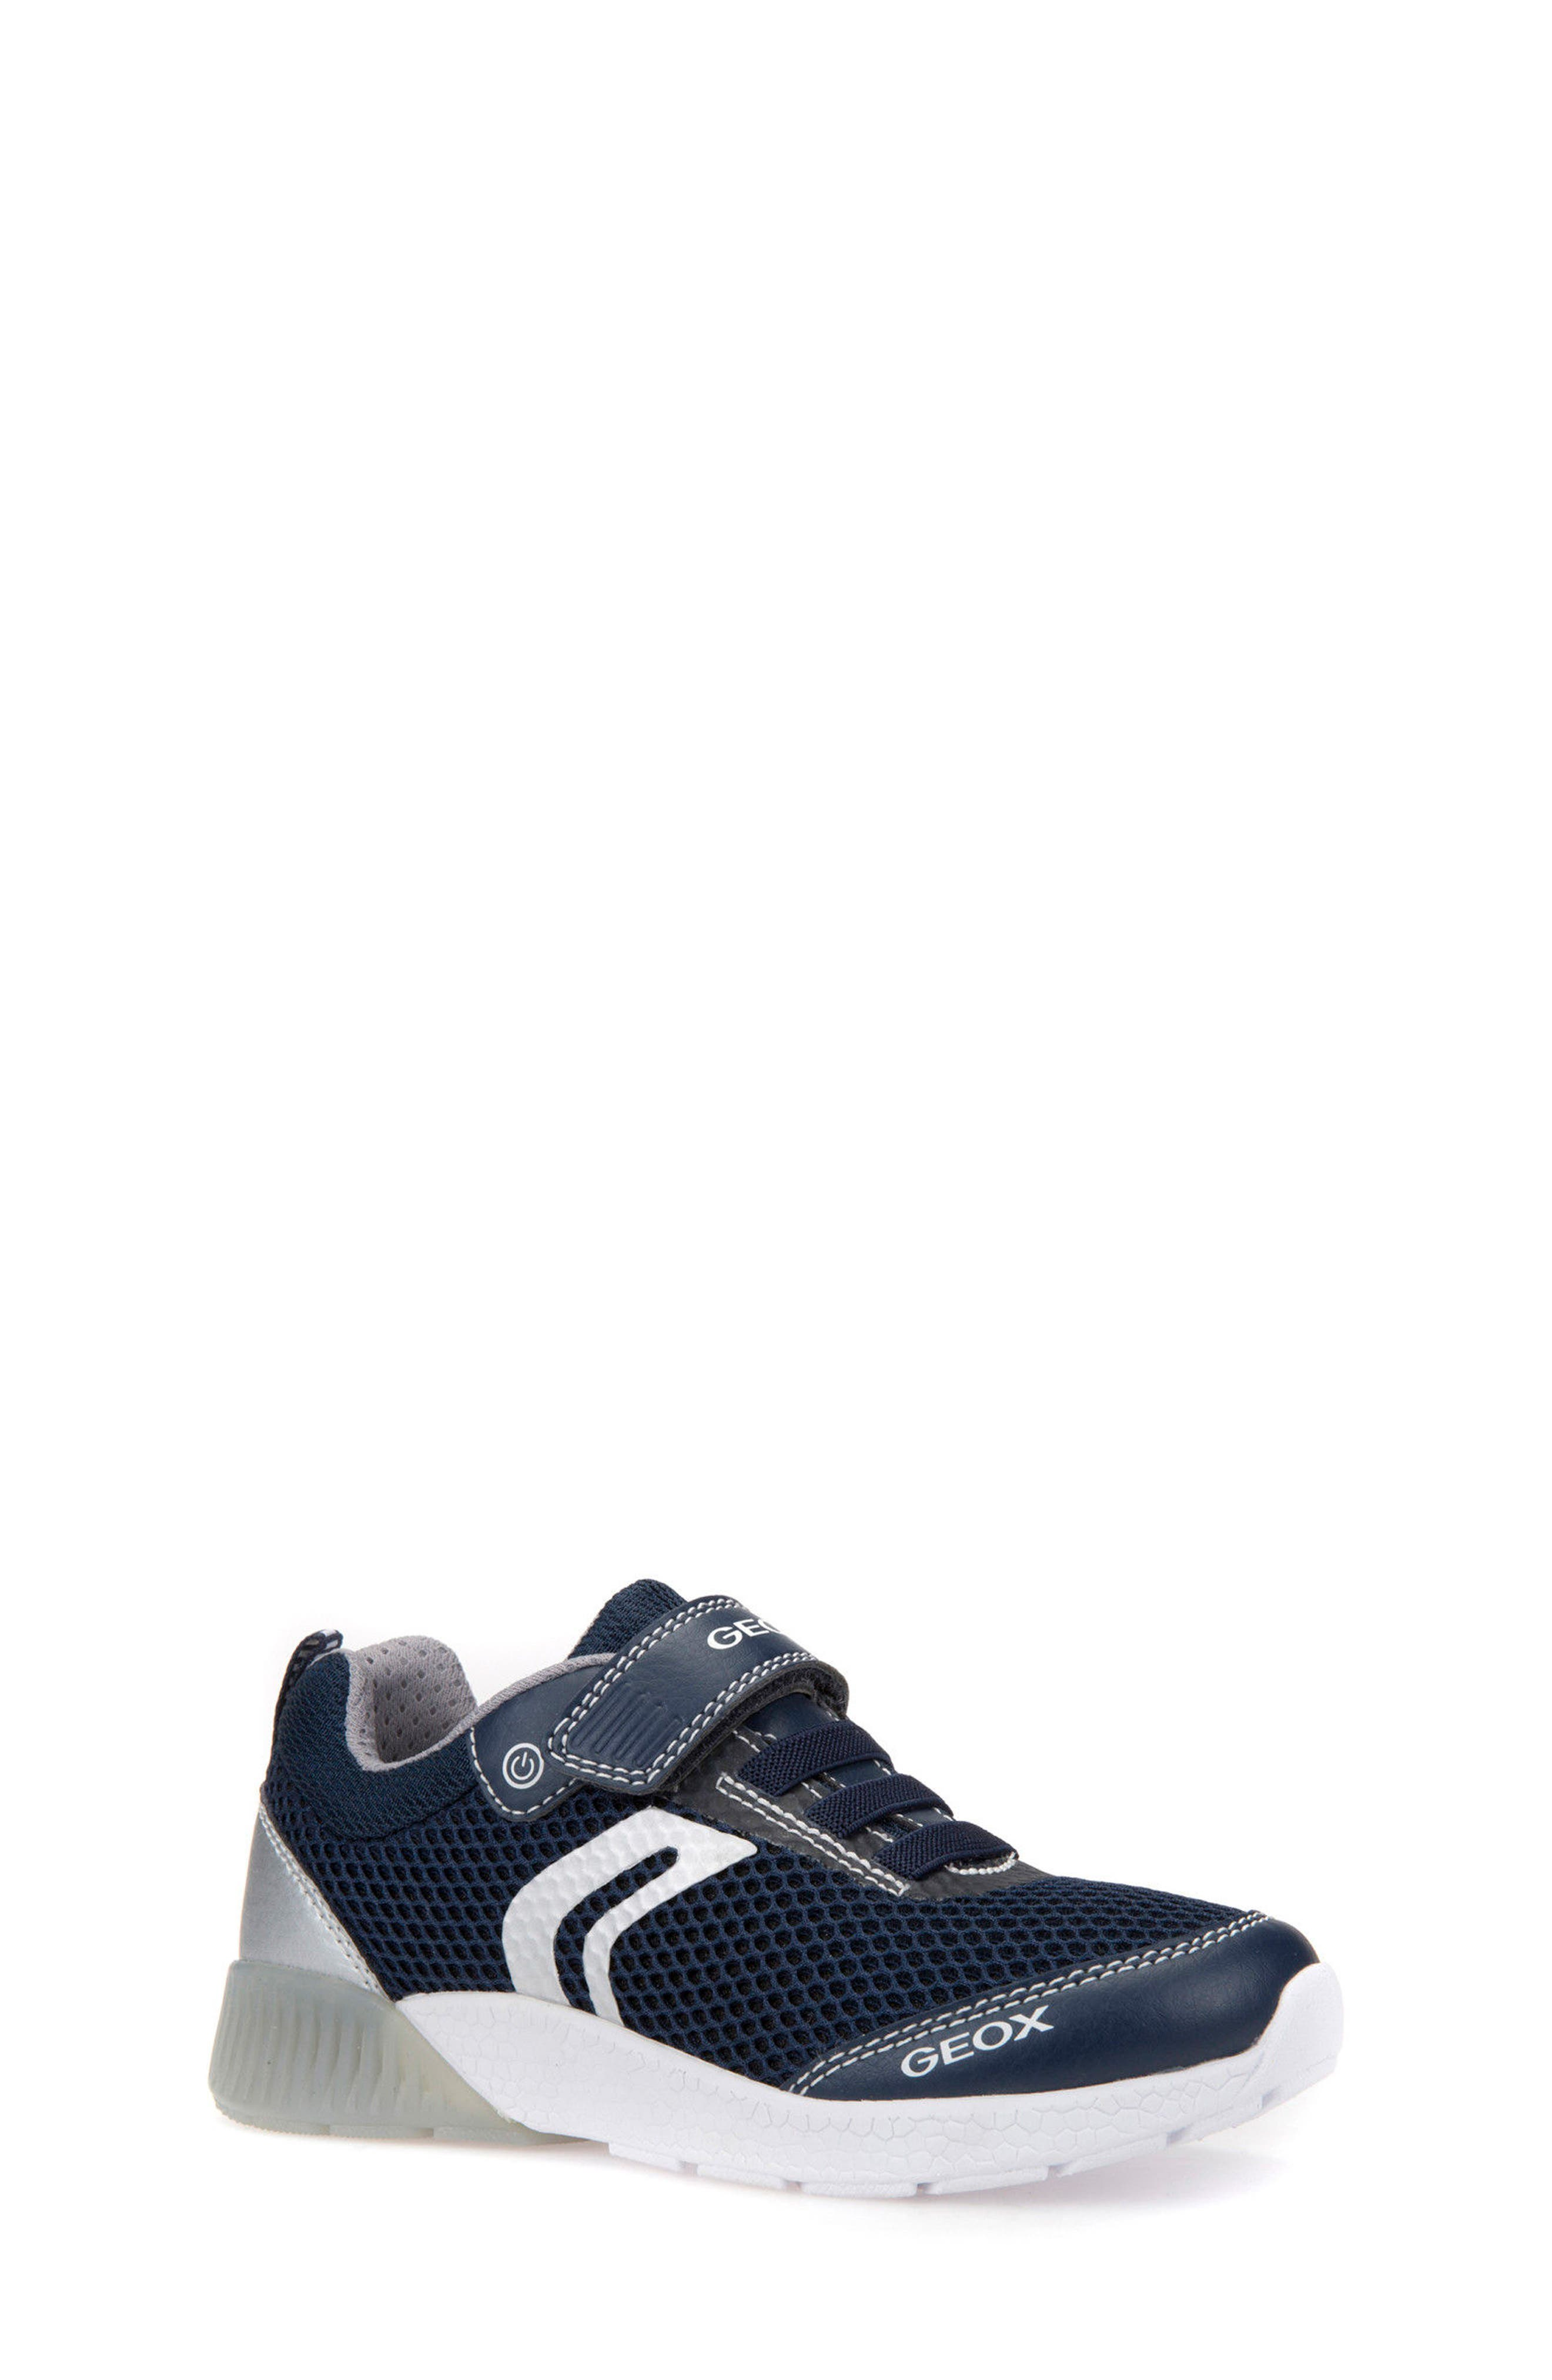 Sveth Light-Up Sneaker,                             Main thumbnail 1, color,                             Navy/ Silver